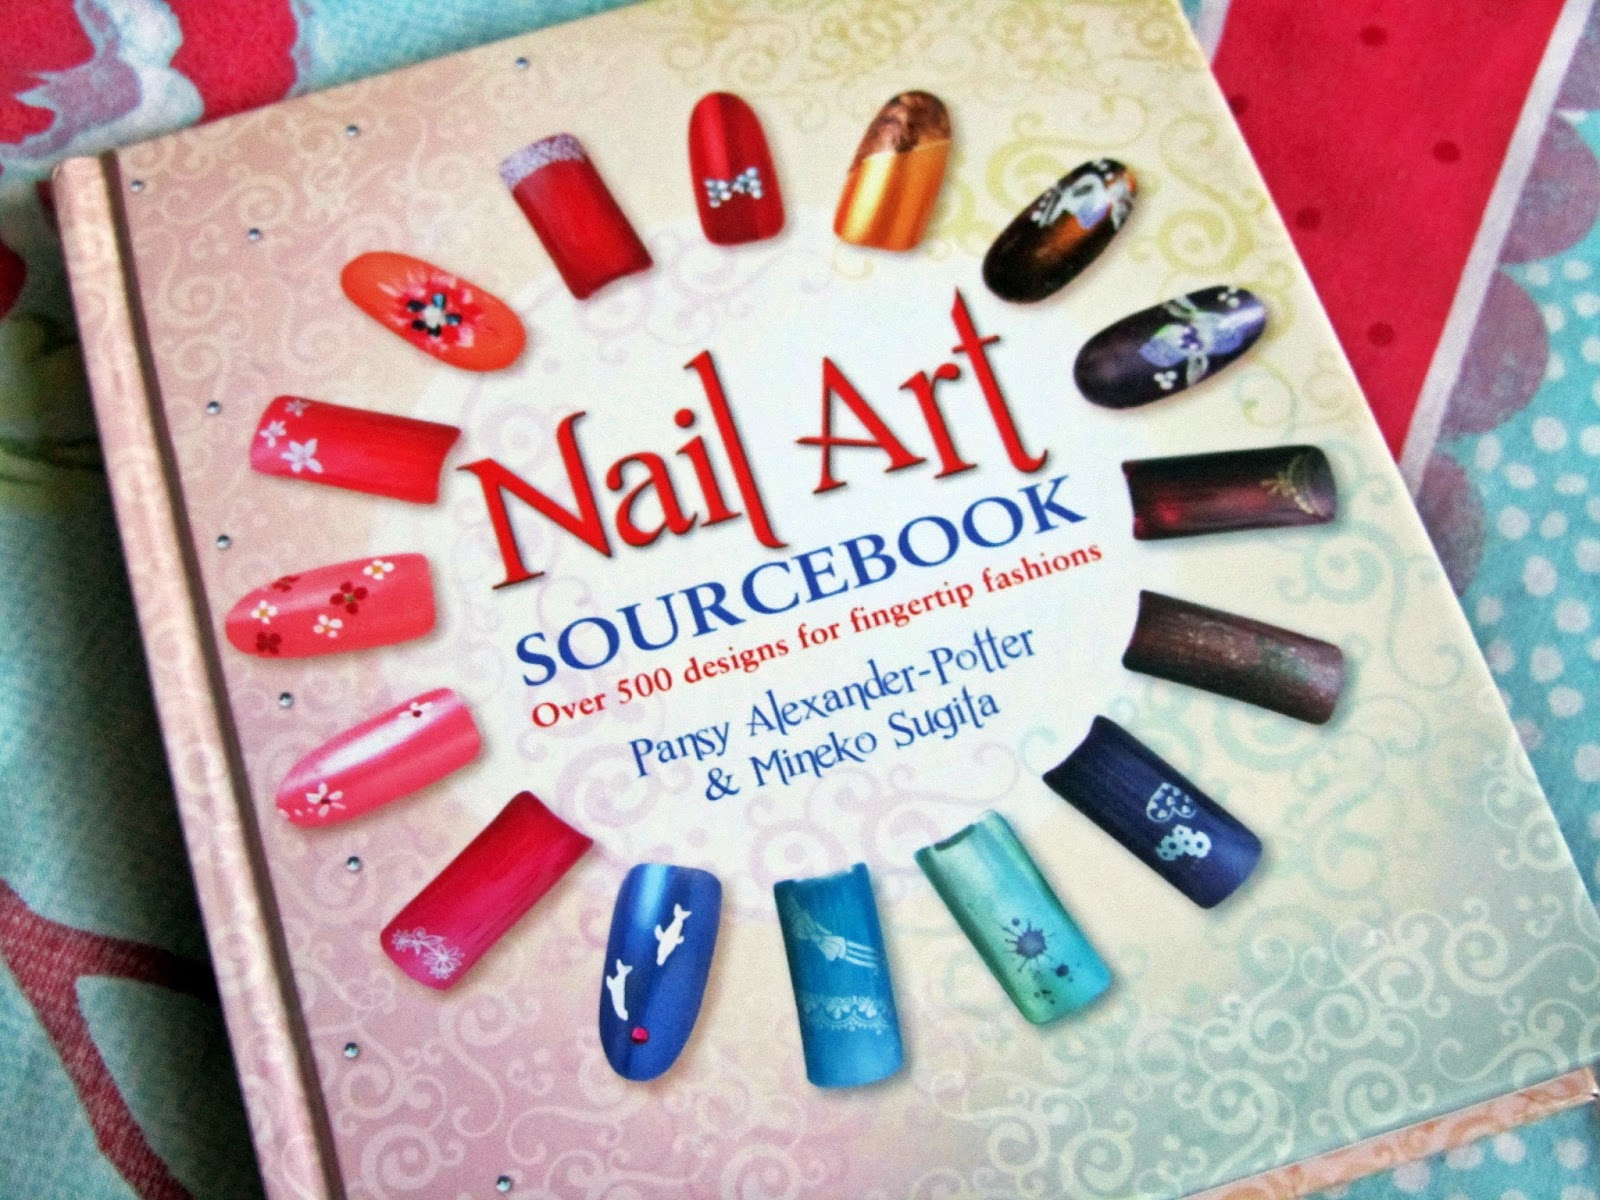 The Nail Art Sourcebook Review   Polka Spots and Freckle Dots